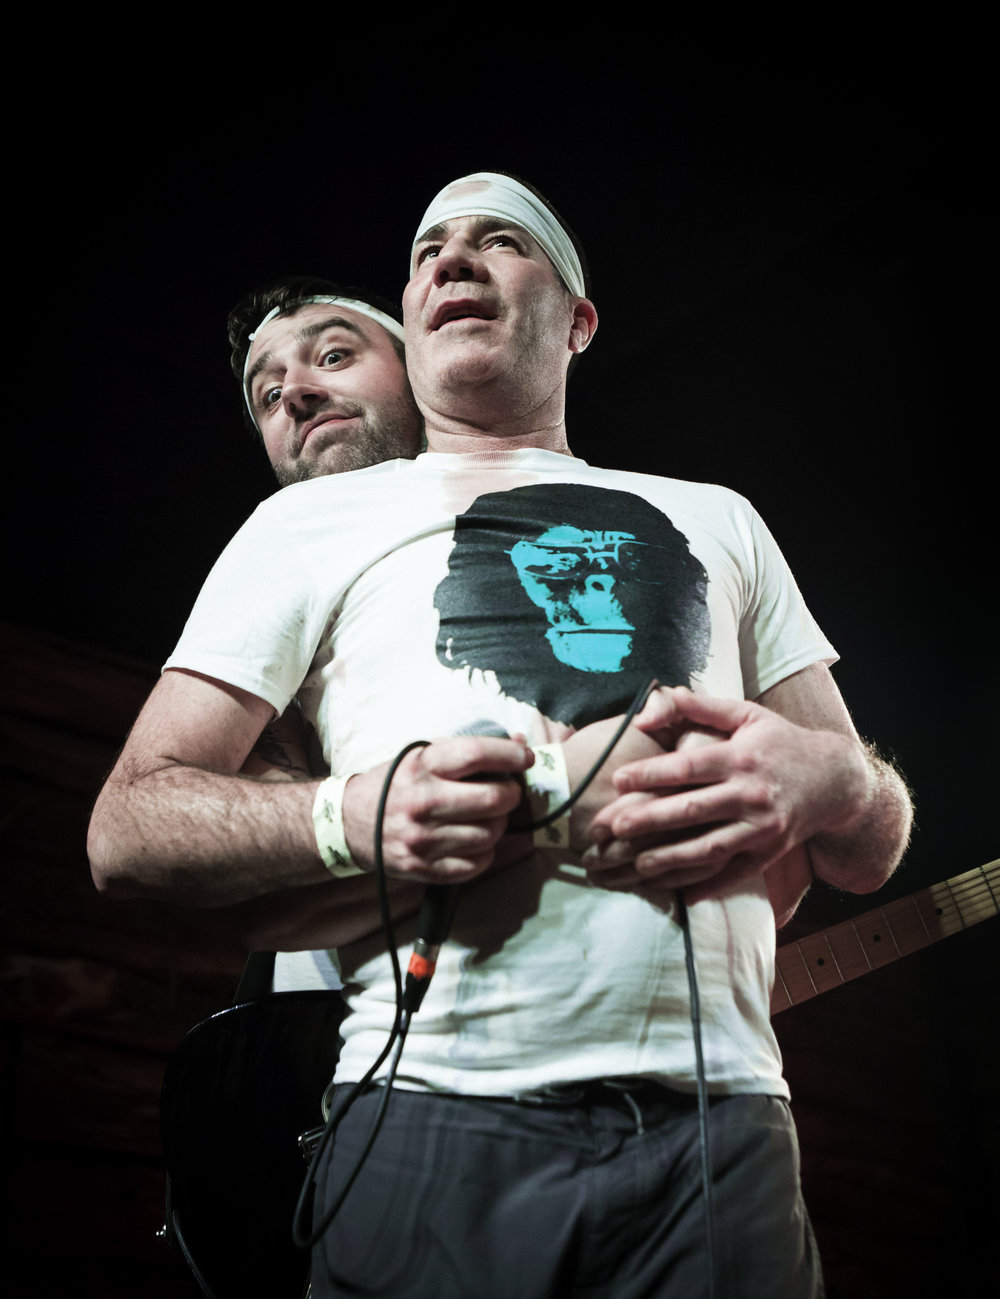 Guttermouth's Mark Adkins (vocals) and Matt Wills (guitar) gave each other and their fans some love before their set began.